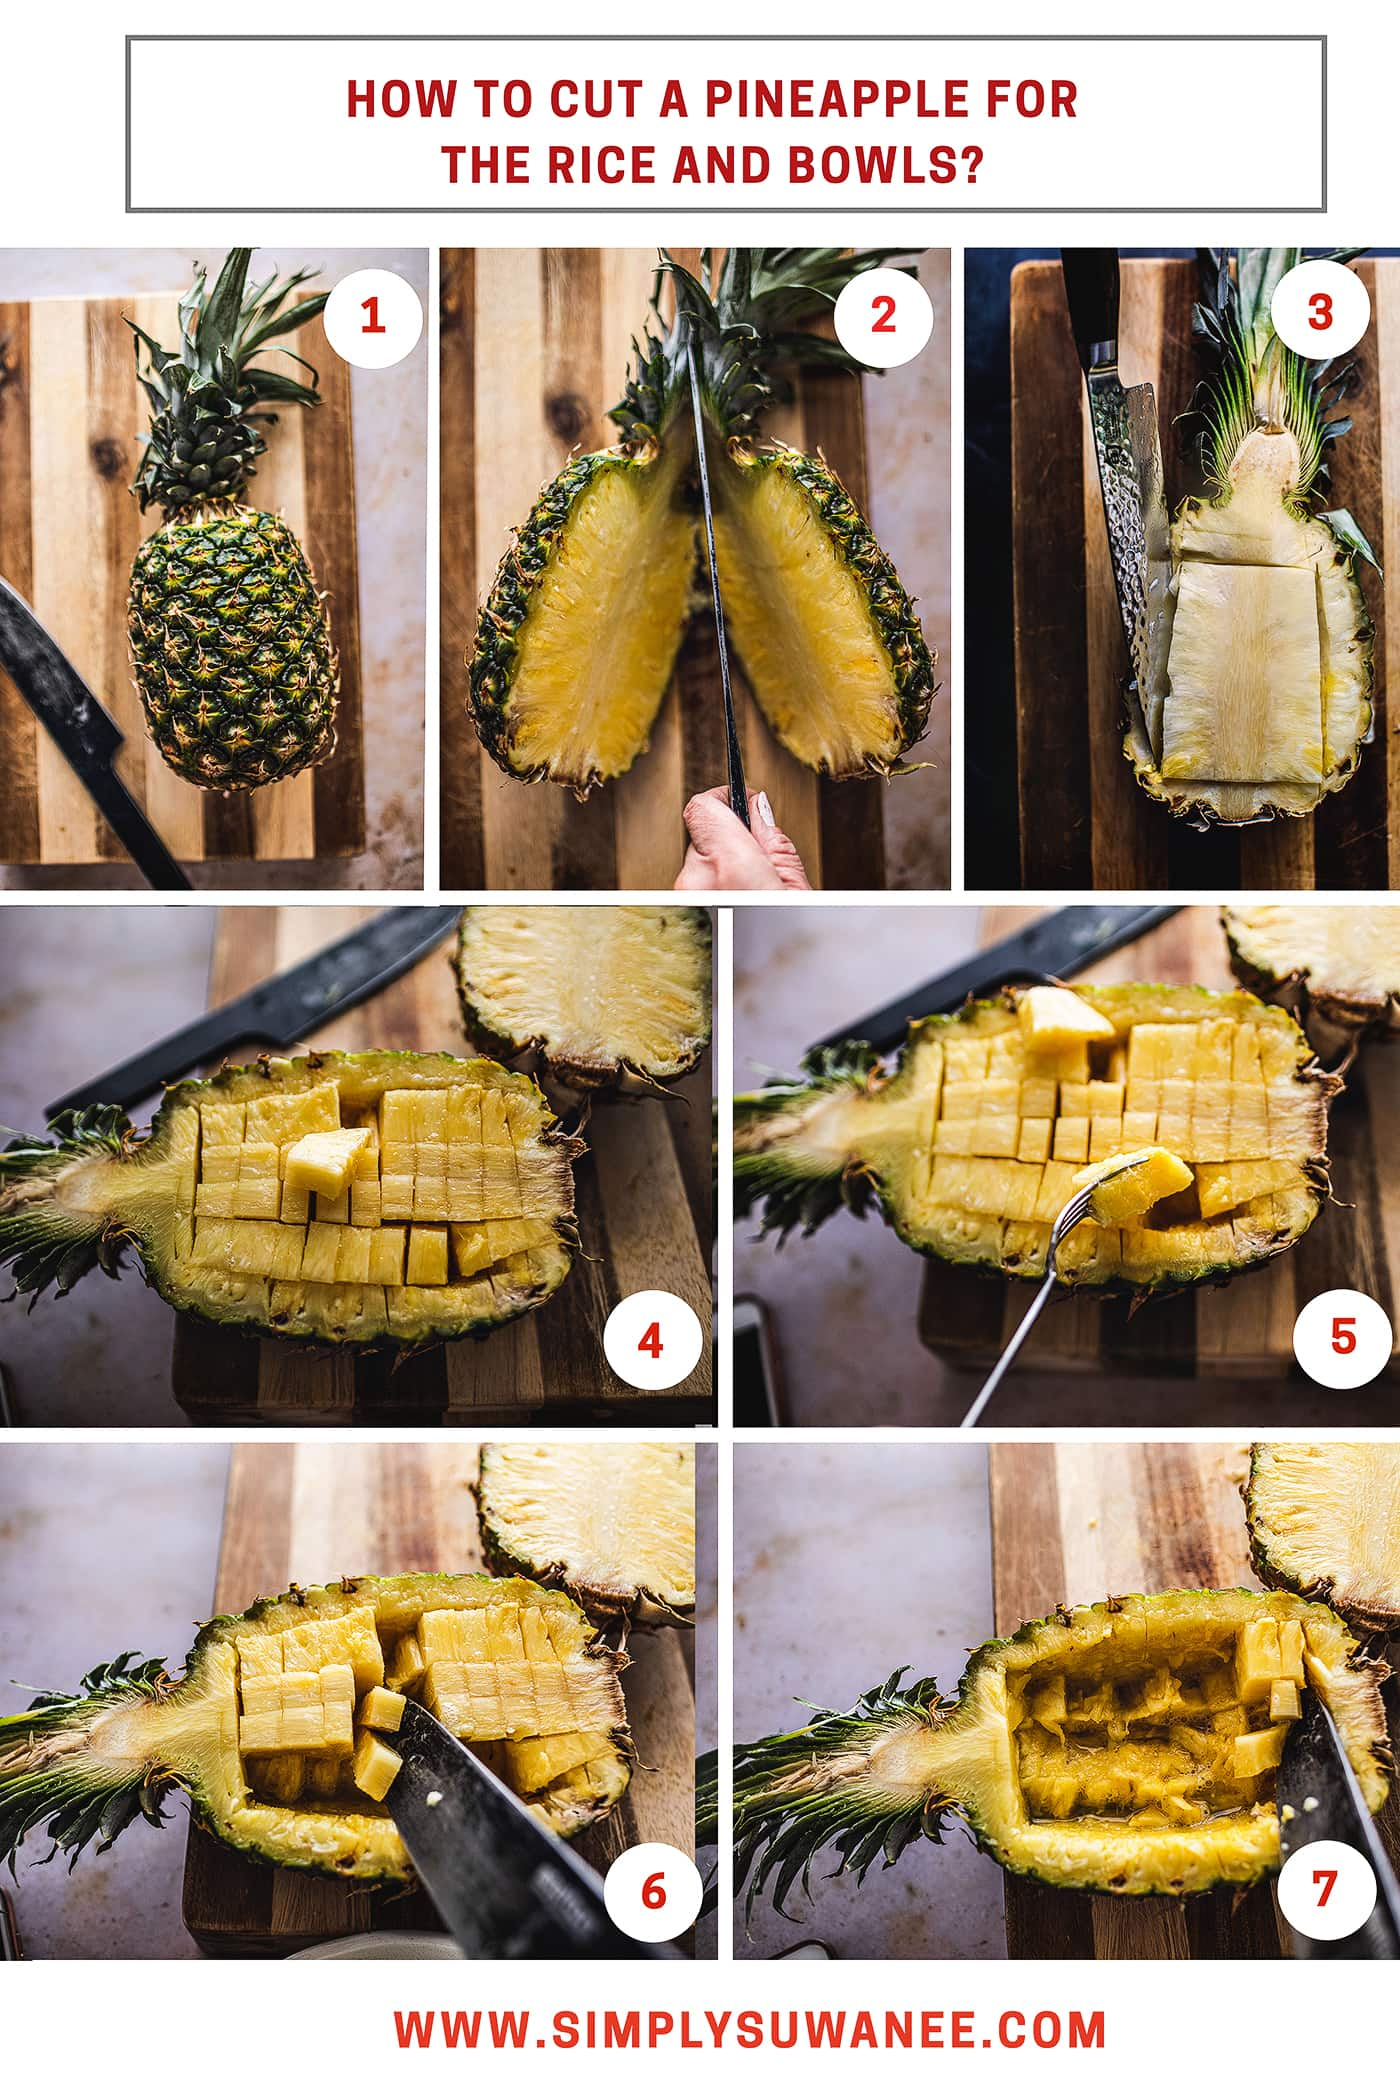 Have you ever wondered how to make pineapple-shaped fruit bowls? Wonder no more! I'm going to show you step-by-step pictures of exactly how to cut a pineapple for my fried rice recipe and bowls.#pineapples #howtocutpineapple #cuttingpineapple#pineapplebowl #cuttingpineapplebowl